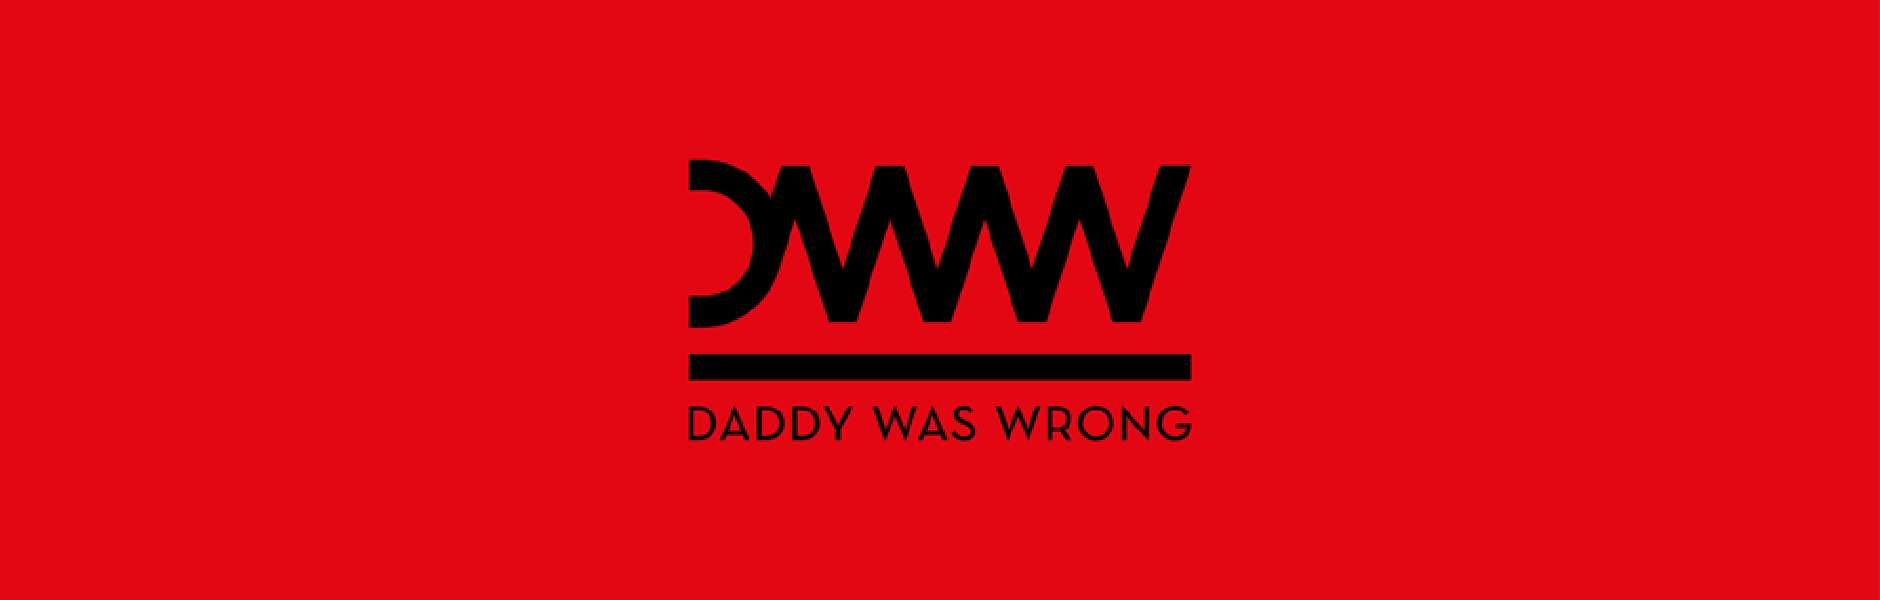 Daddy Was Wrong